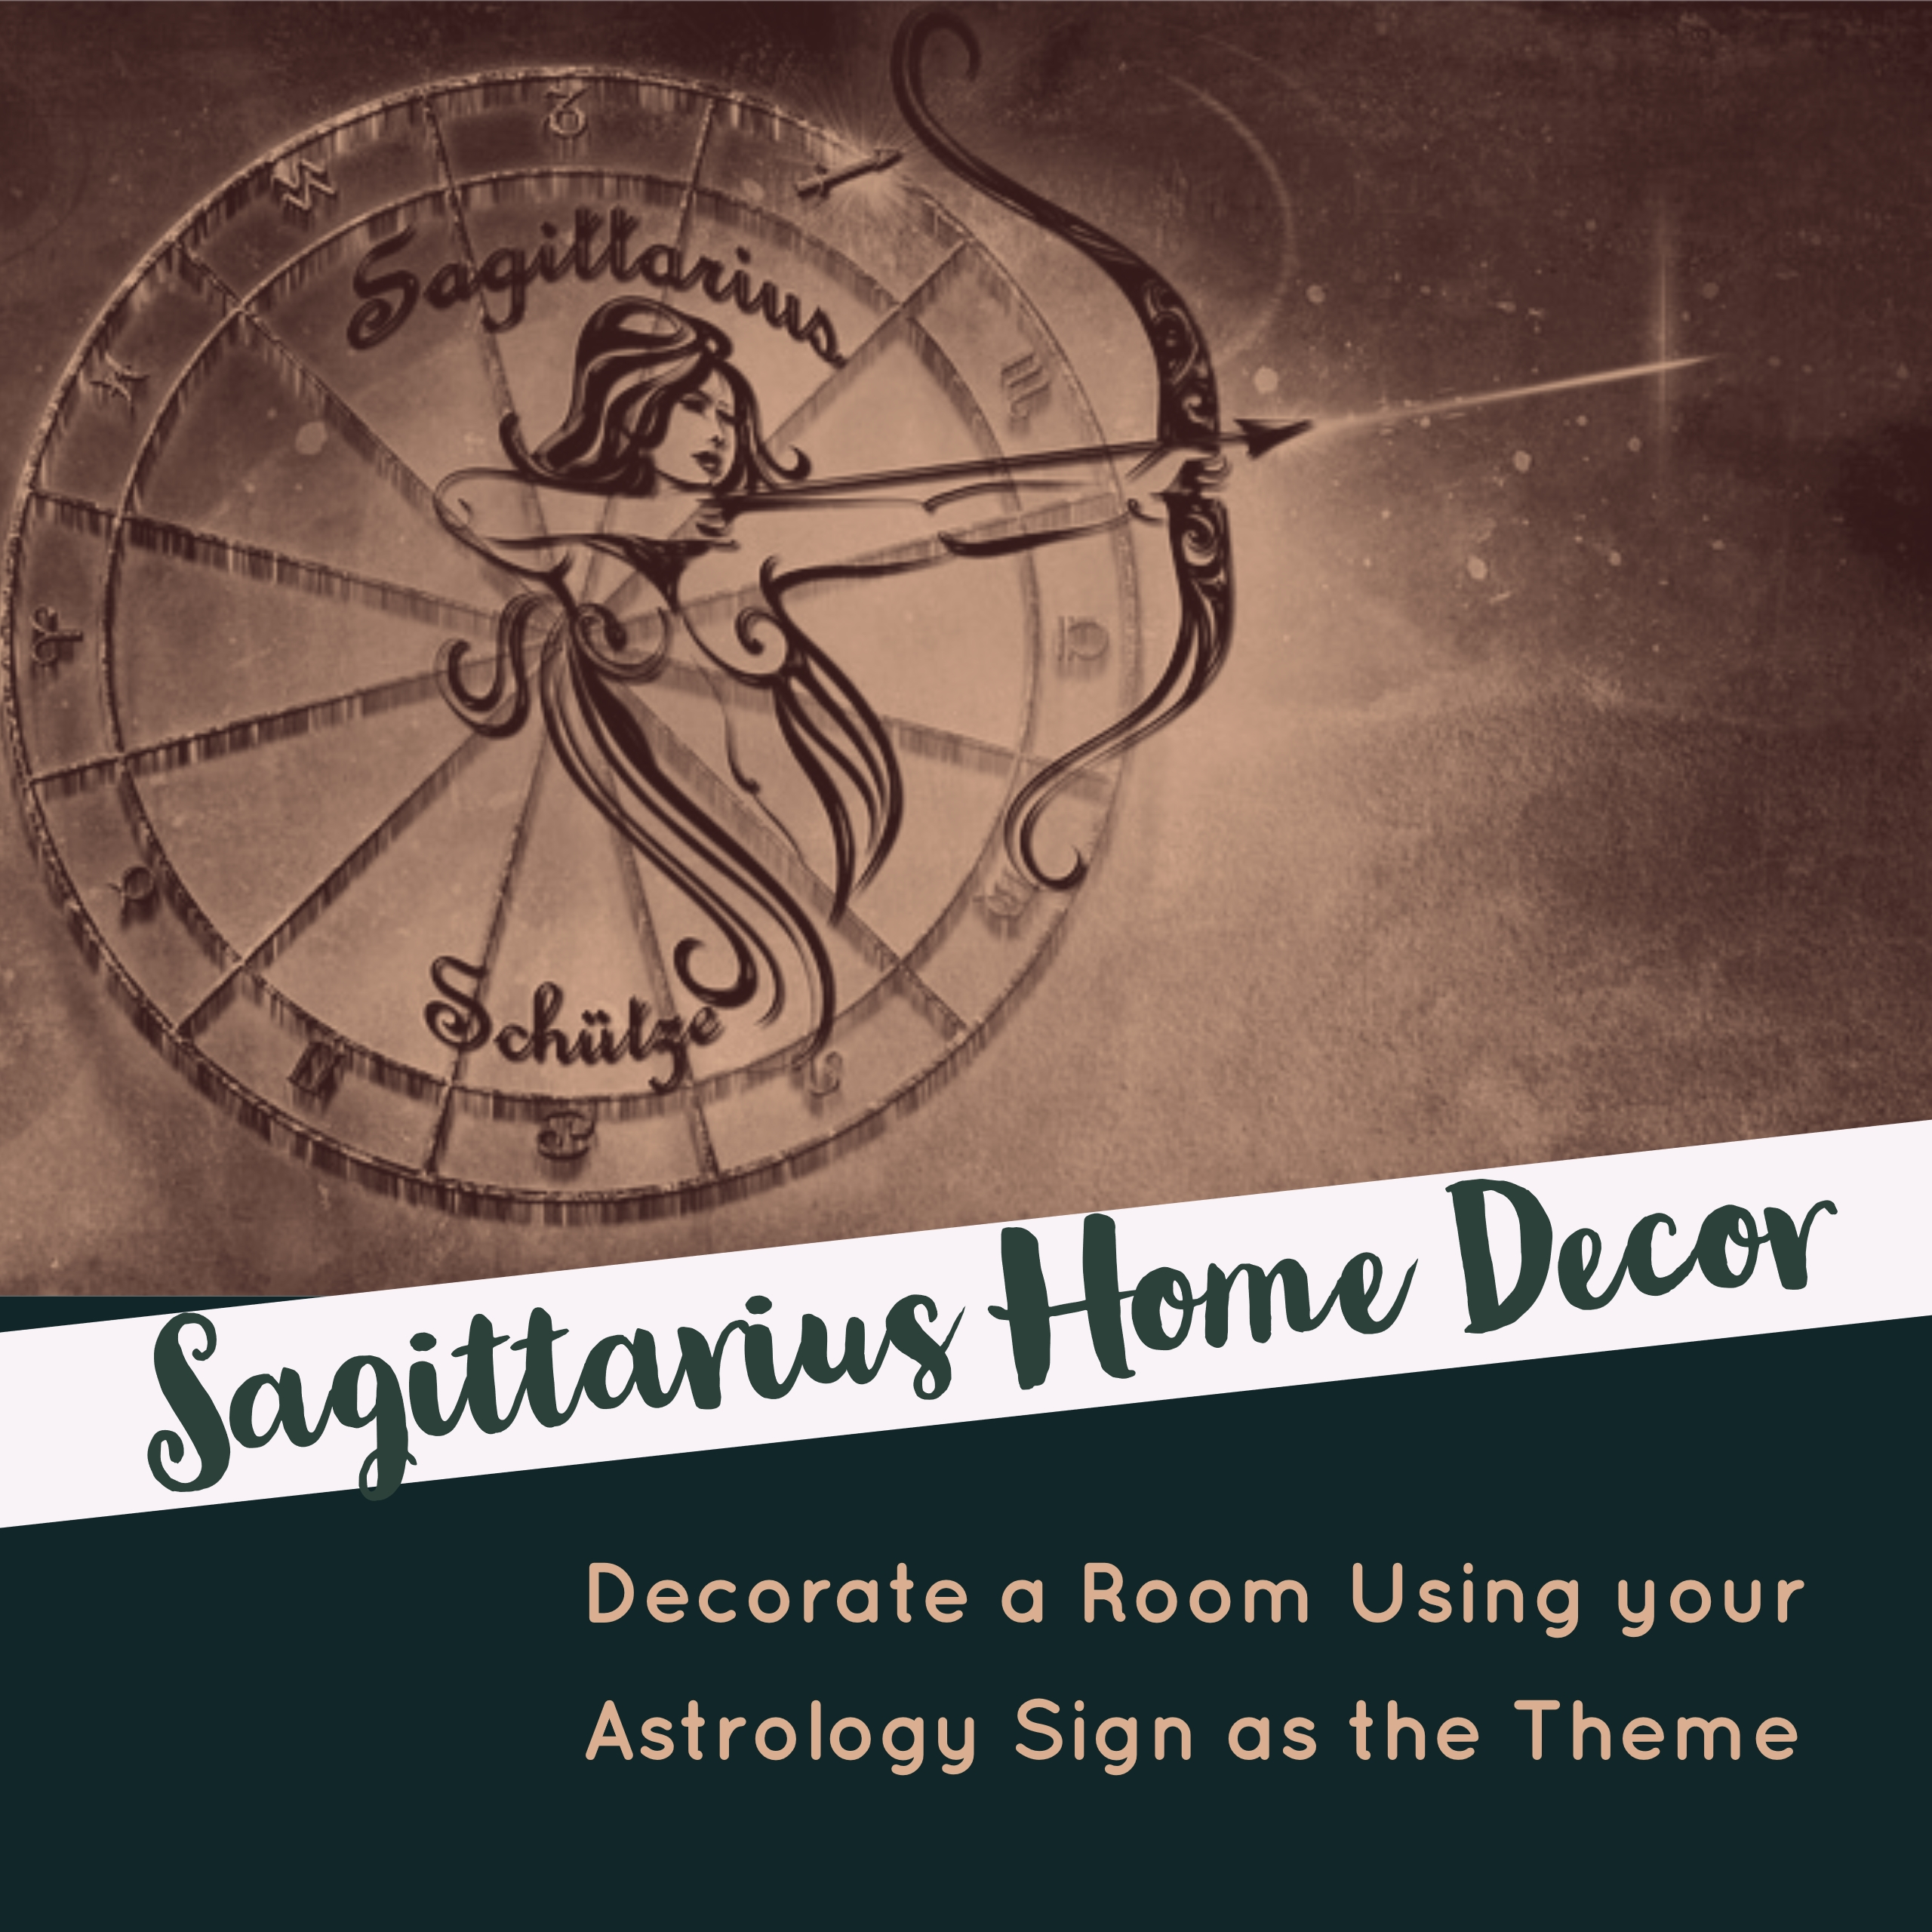 Sagittarius Home Decor